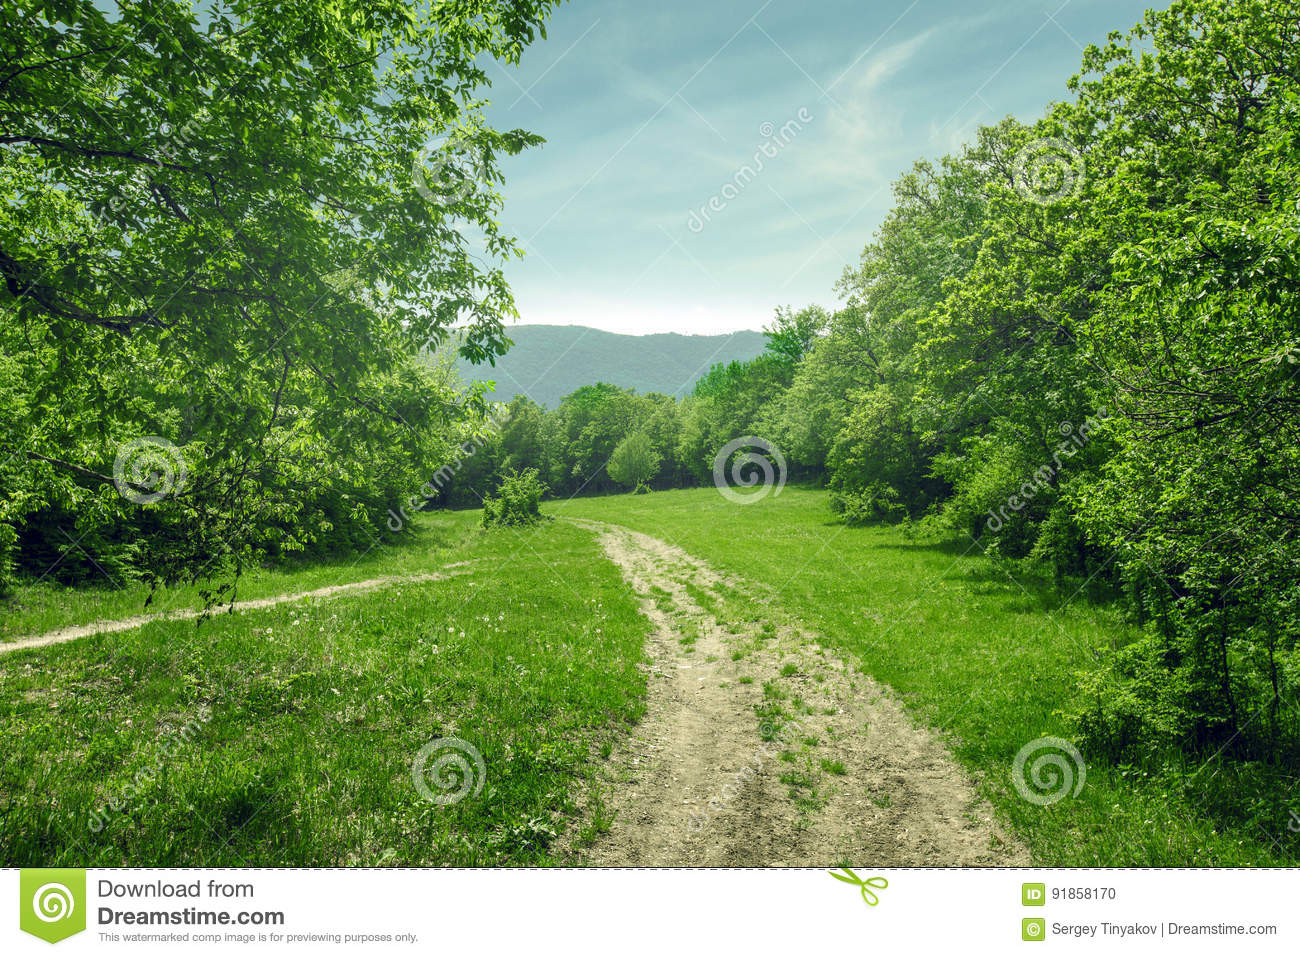 Download Country Landscape, Dirt Road In The Forest Glade, Sunny Summer Day Stock Photo - Image of rural, bright: 91858170